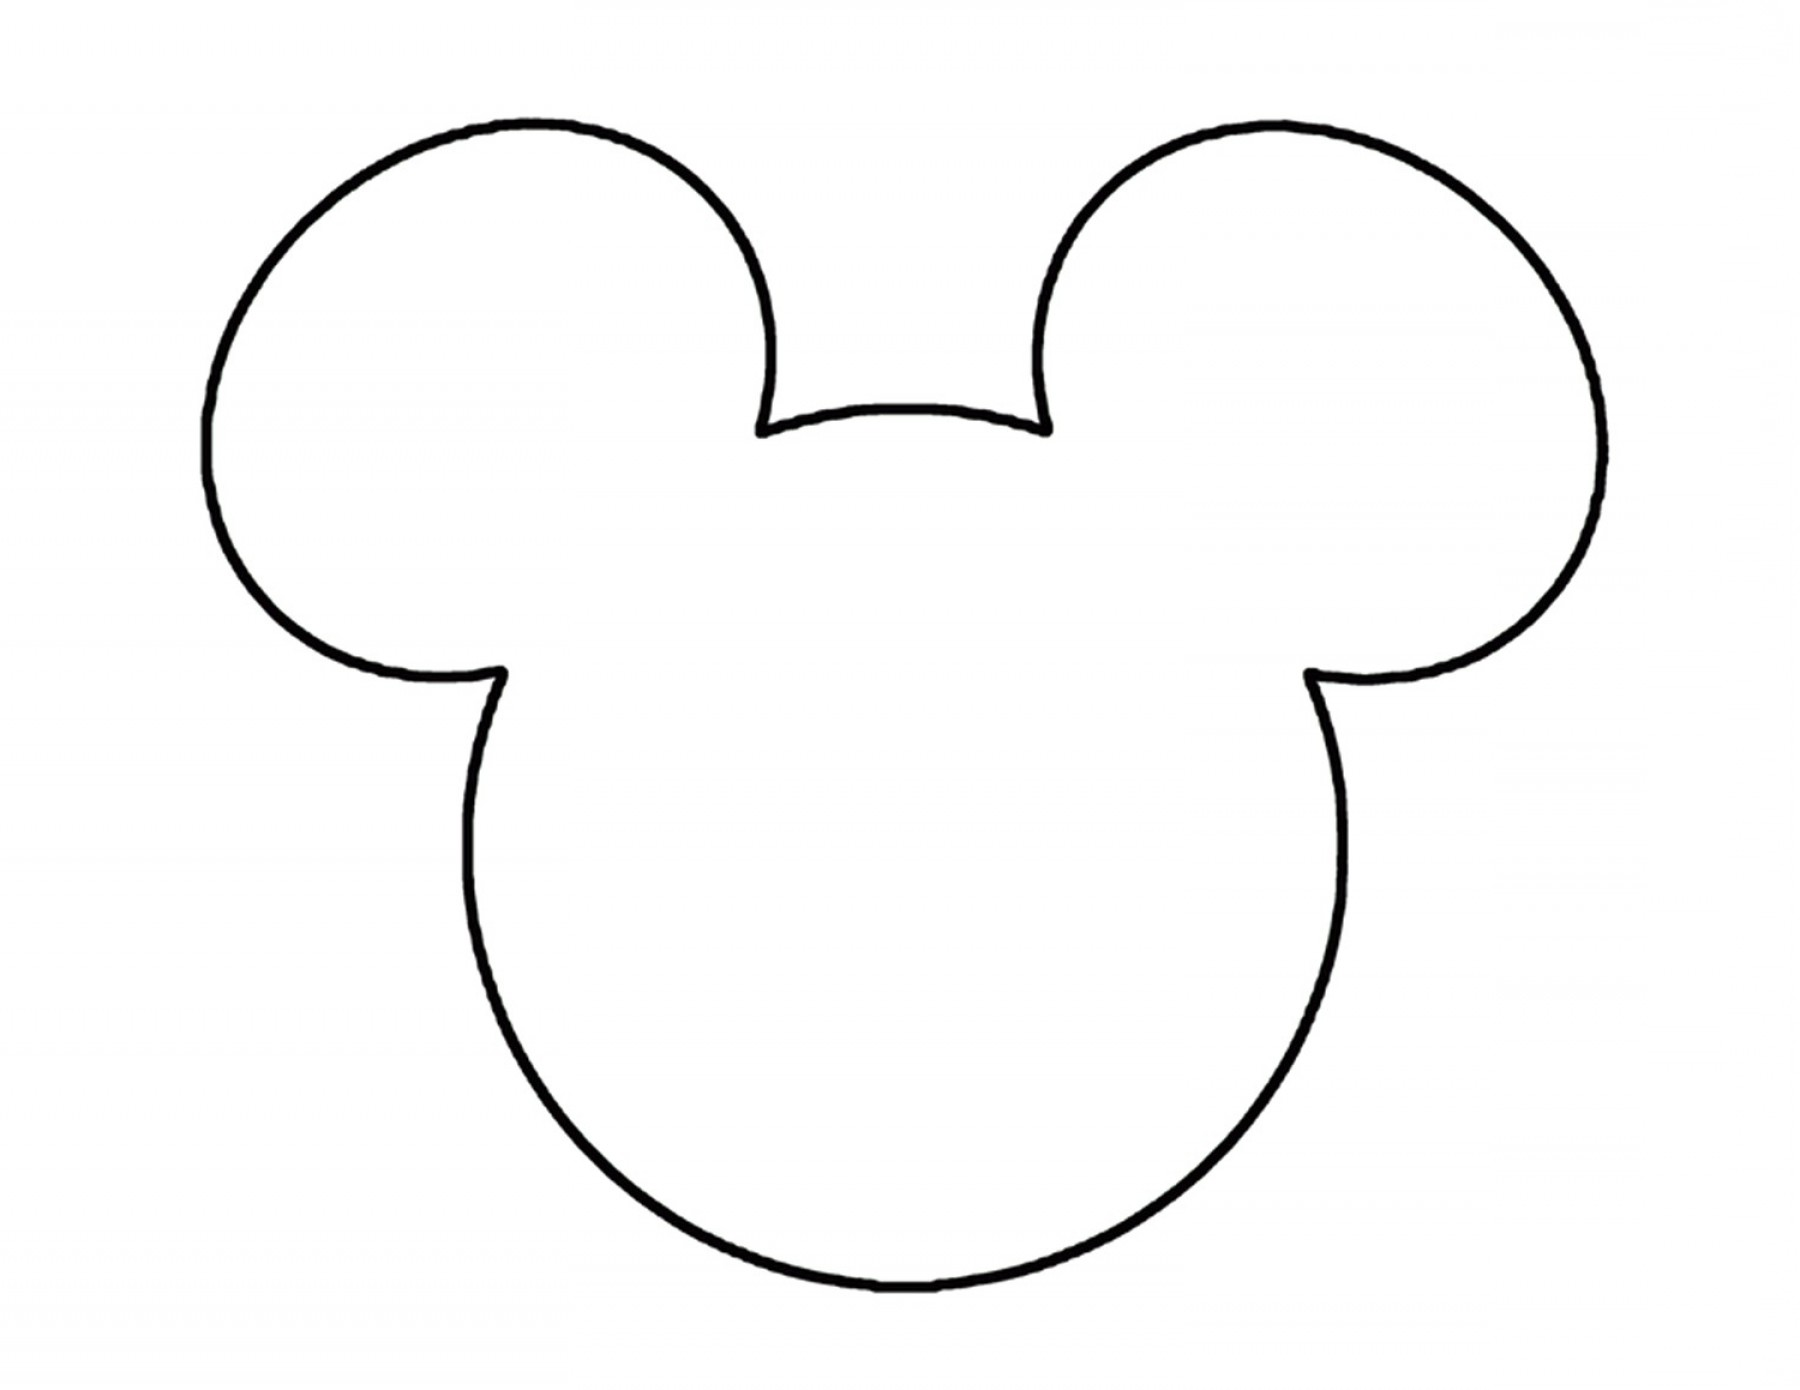 Free mickey mouse black and white outline clipart graphic free library Mickey Mouse Ears Head Outline Disneyland Pinterest Clipart | SOIDERGI graphic free library